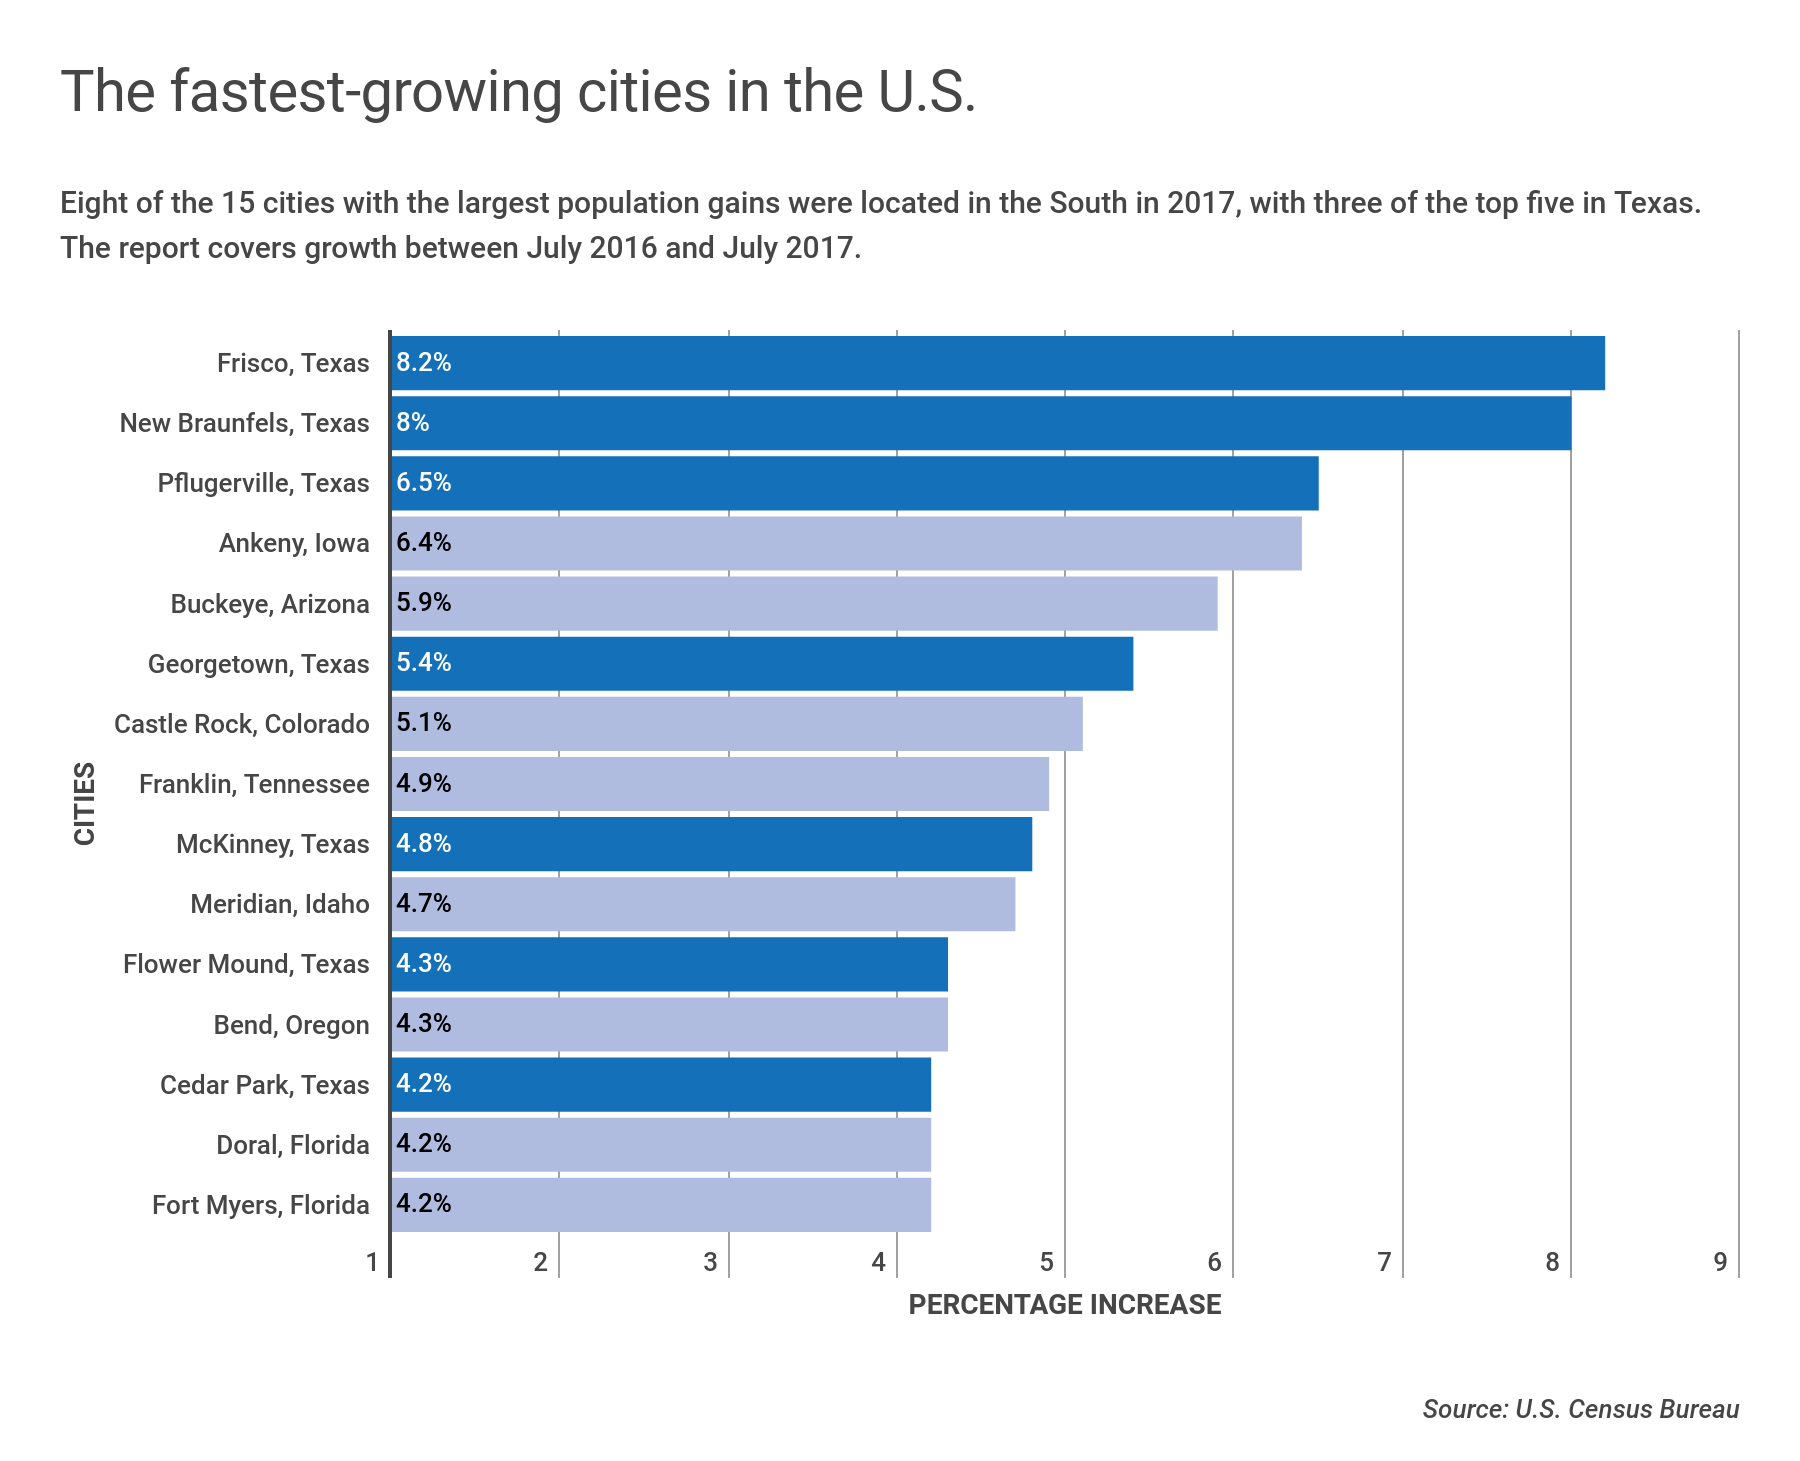 Between 2016 and 2017 seven of the 15 fastest-growing large cities were located in Texas. Frisco's gain of 8.2 percent more people is more than 11 times faster than the nation's growth rate of 0.7 percent